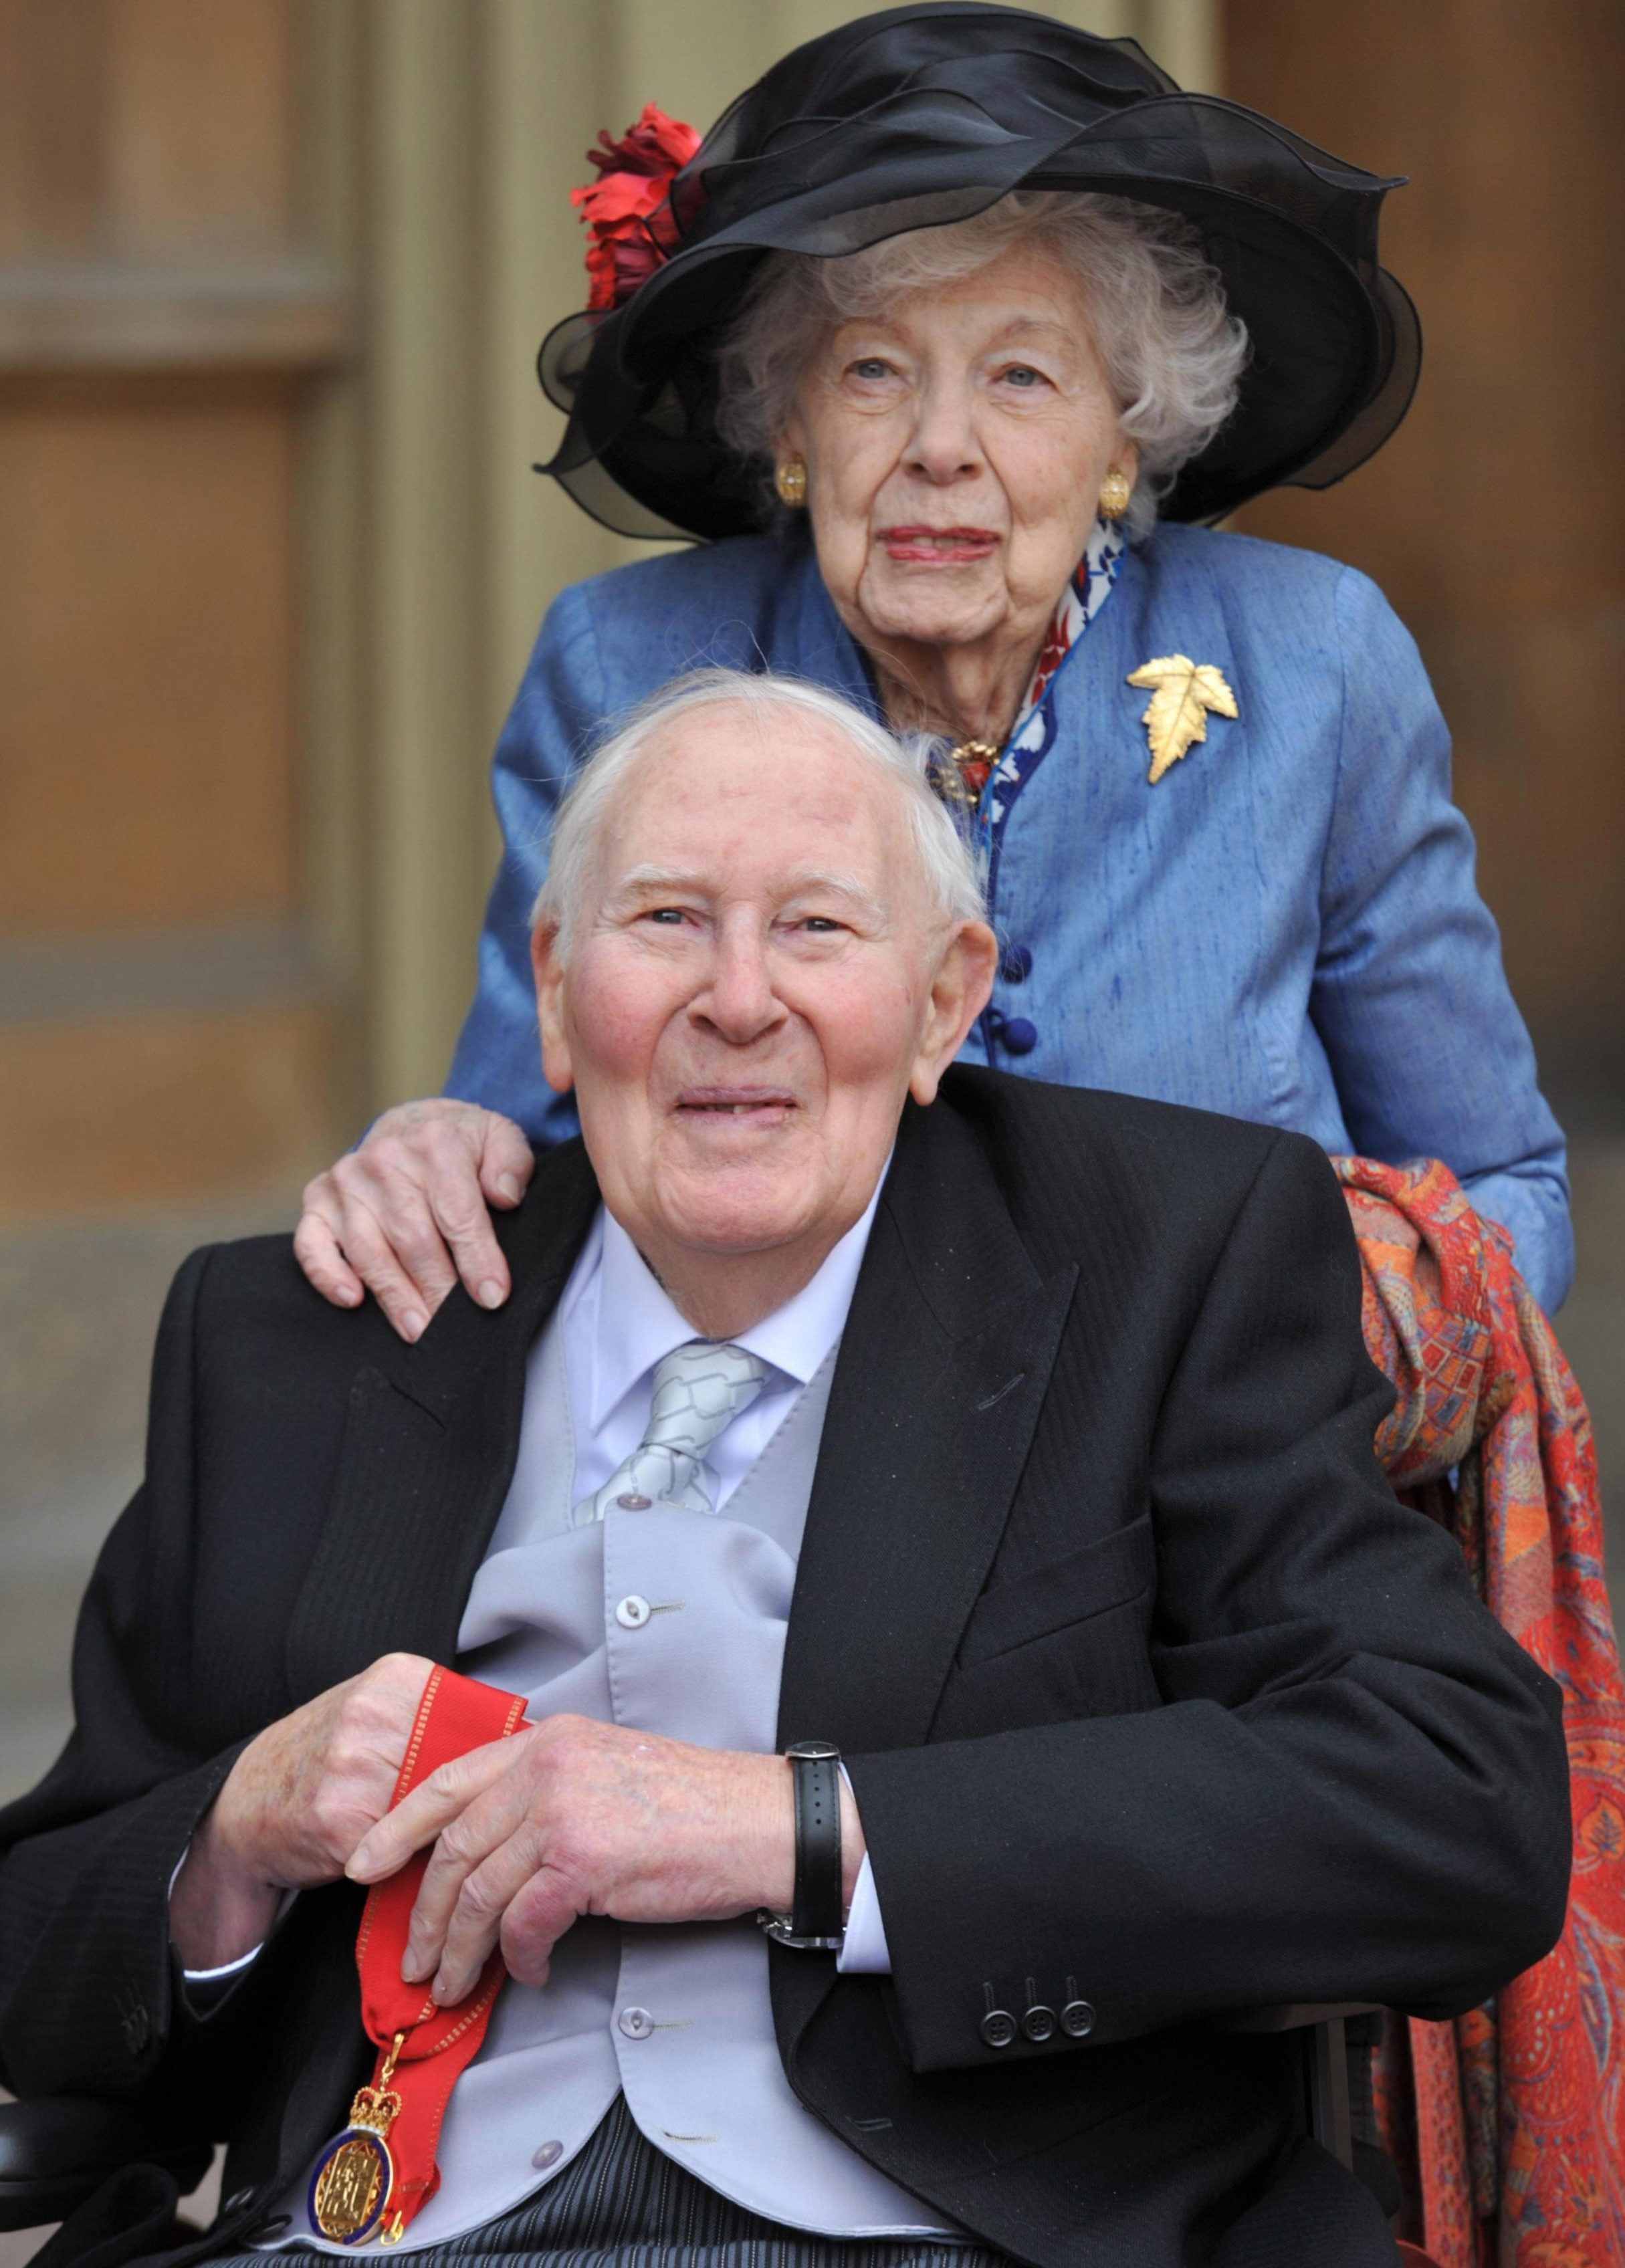 Bannister was knighted in 1975 and made a Companion of Honour in the 2017 New Year's Honours